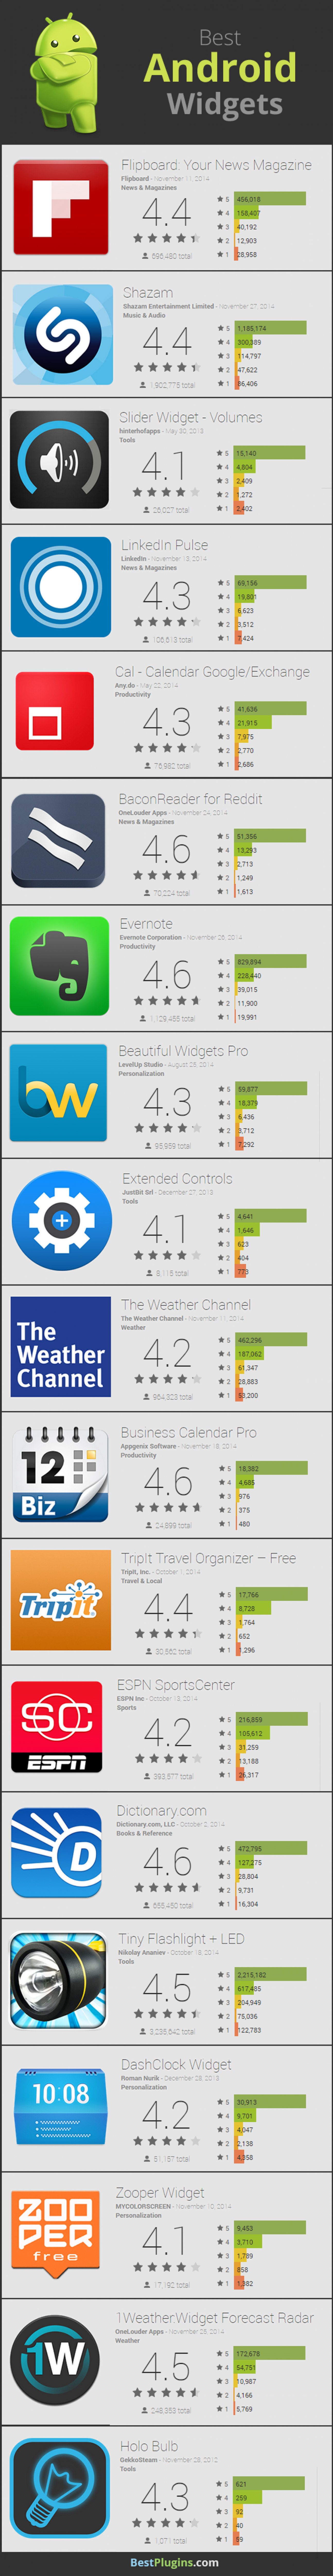 Must Have Android Widgets For Your Device  Infographic